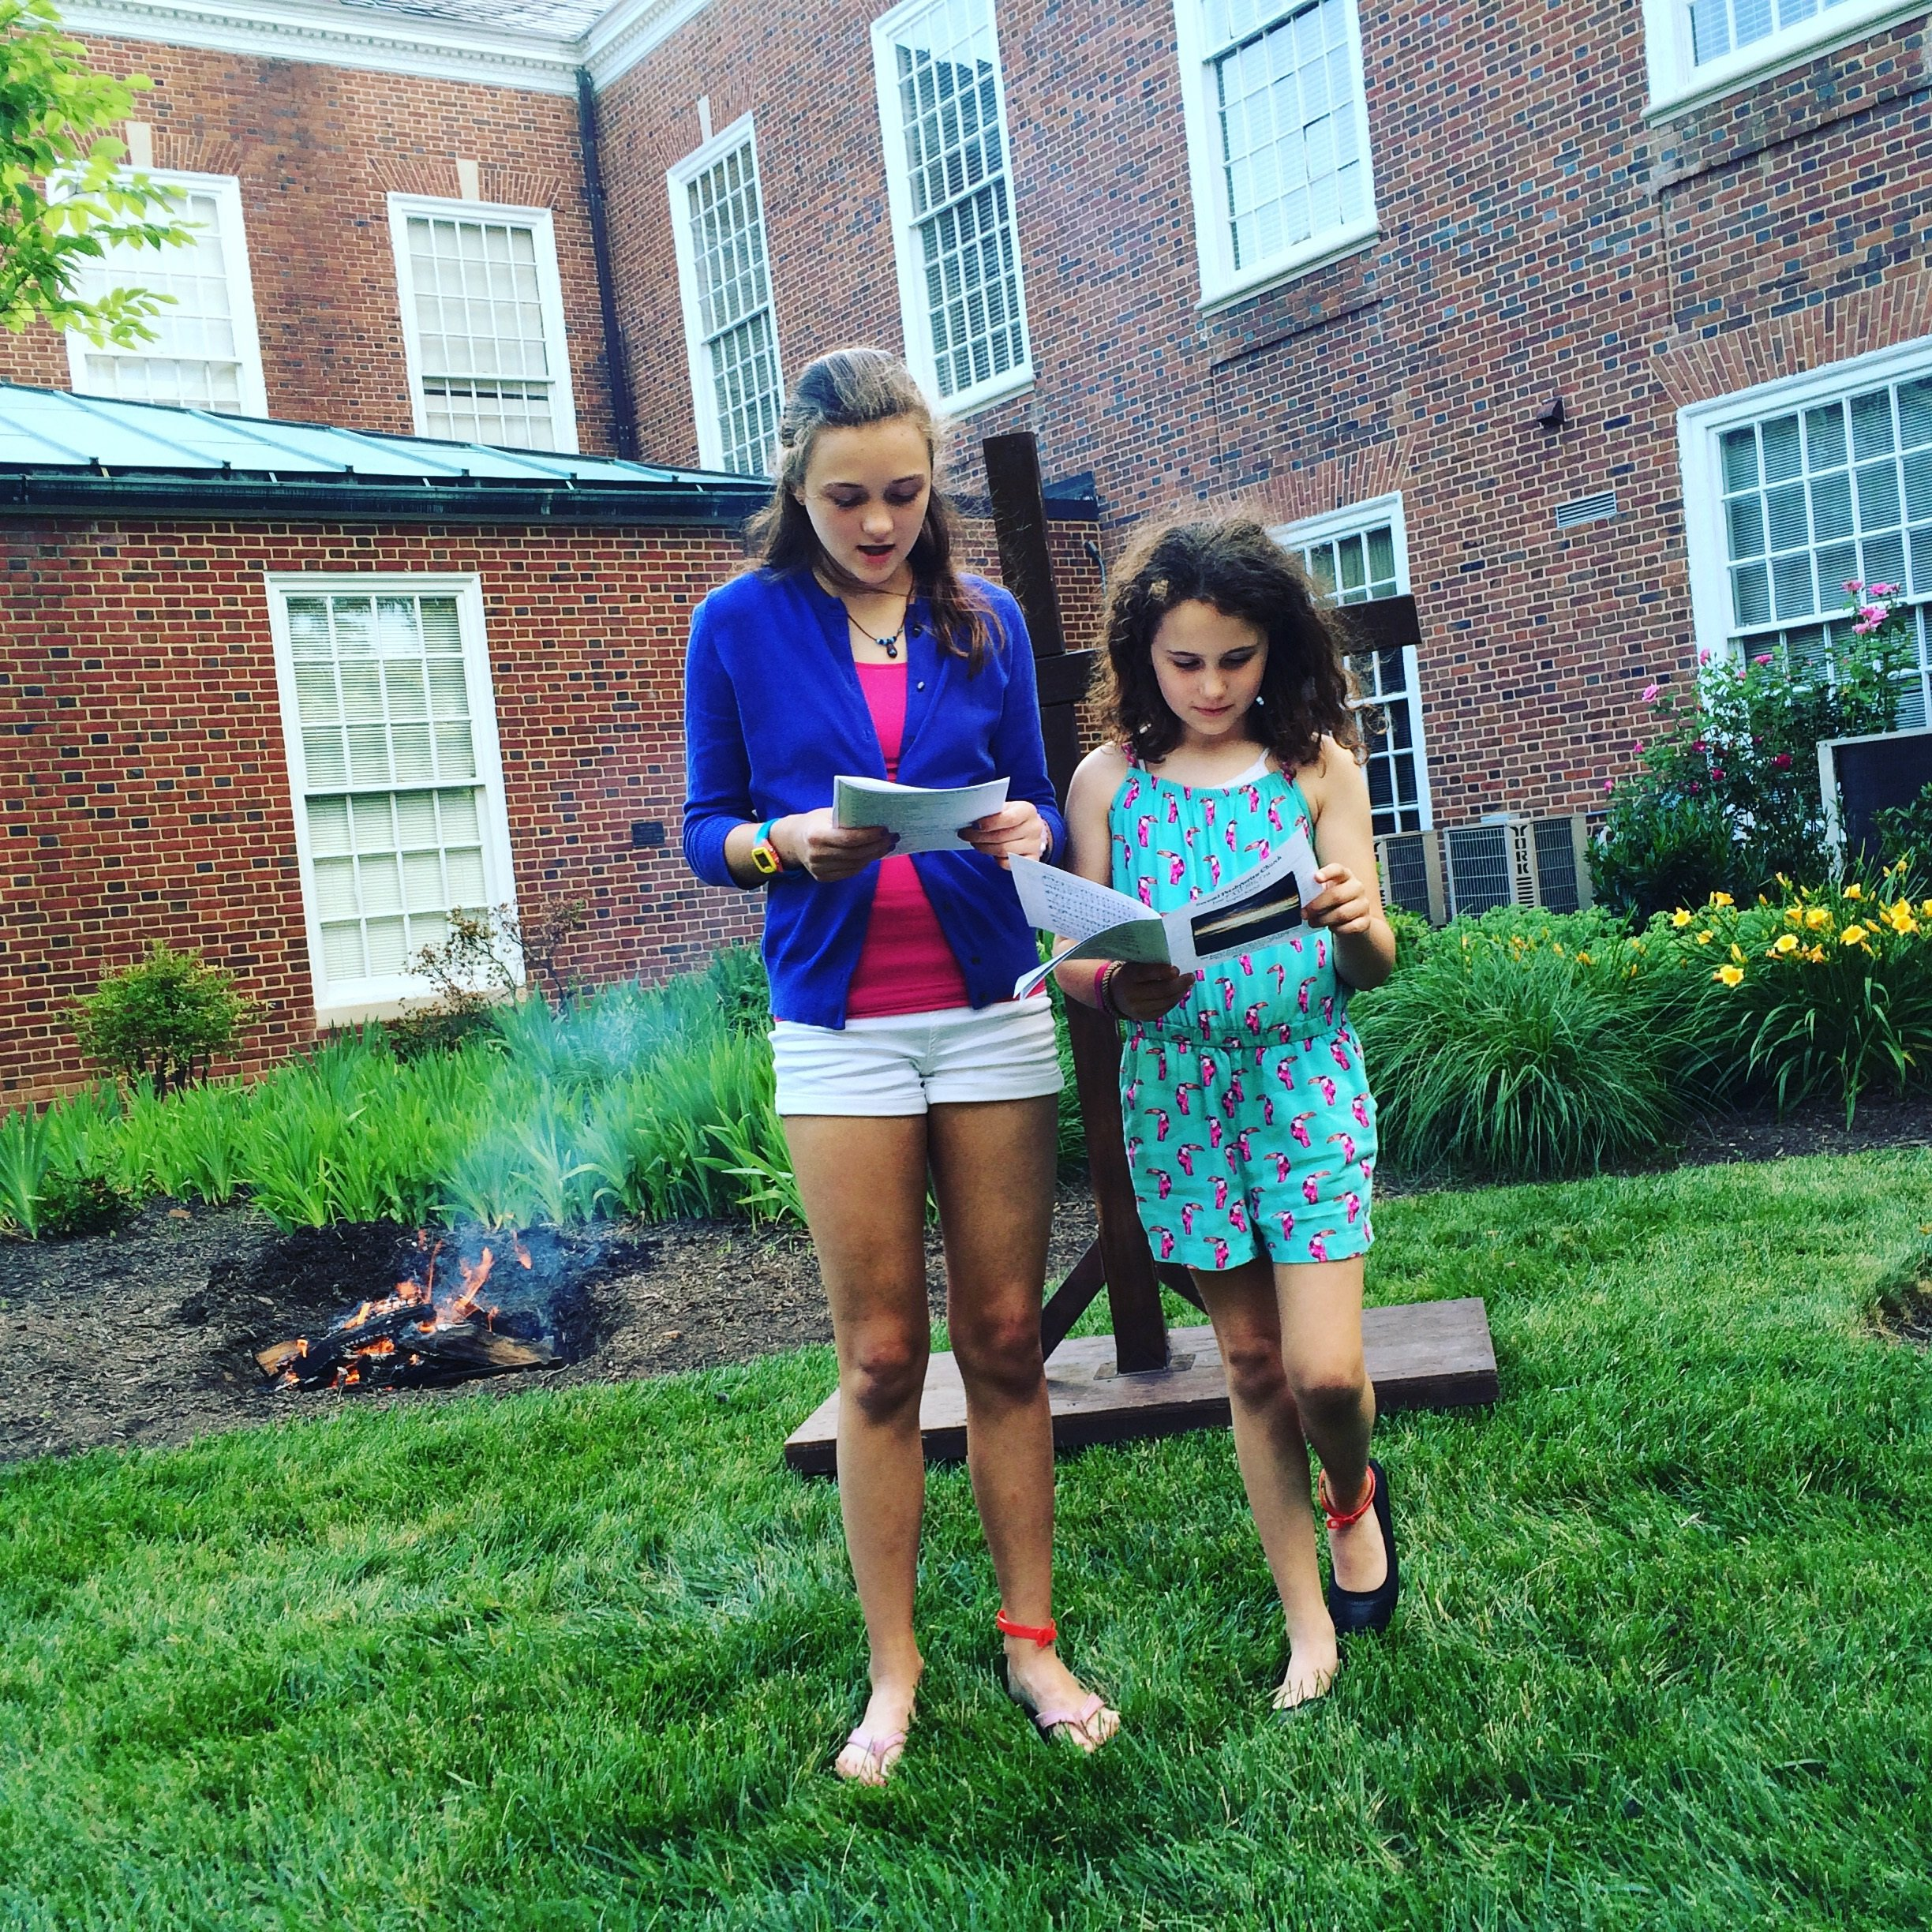 Young liturgists during summer evening outddor vespers service